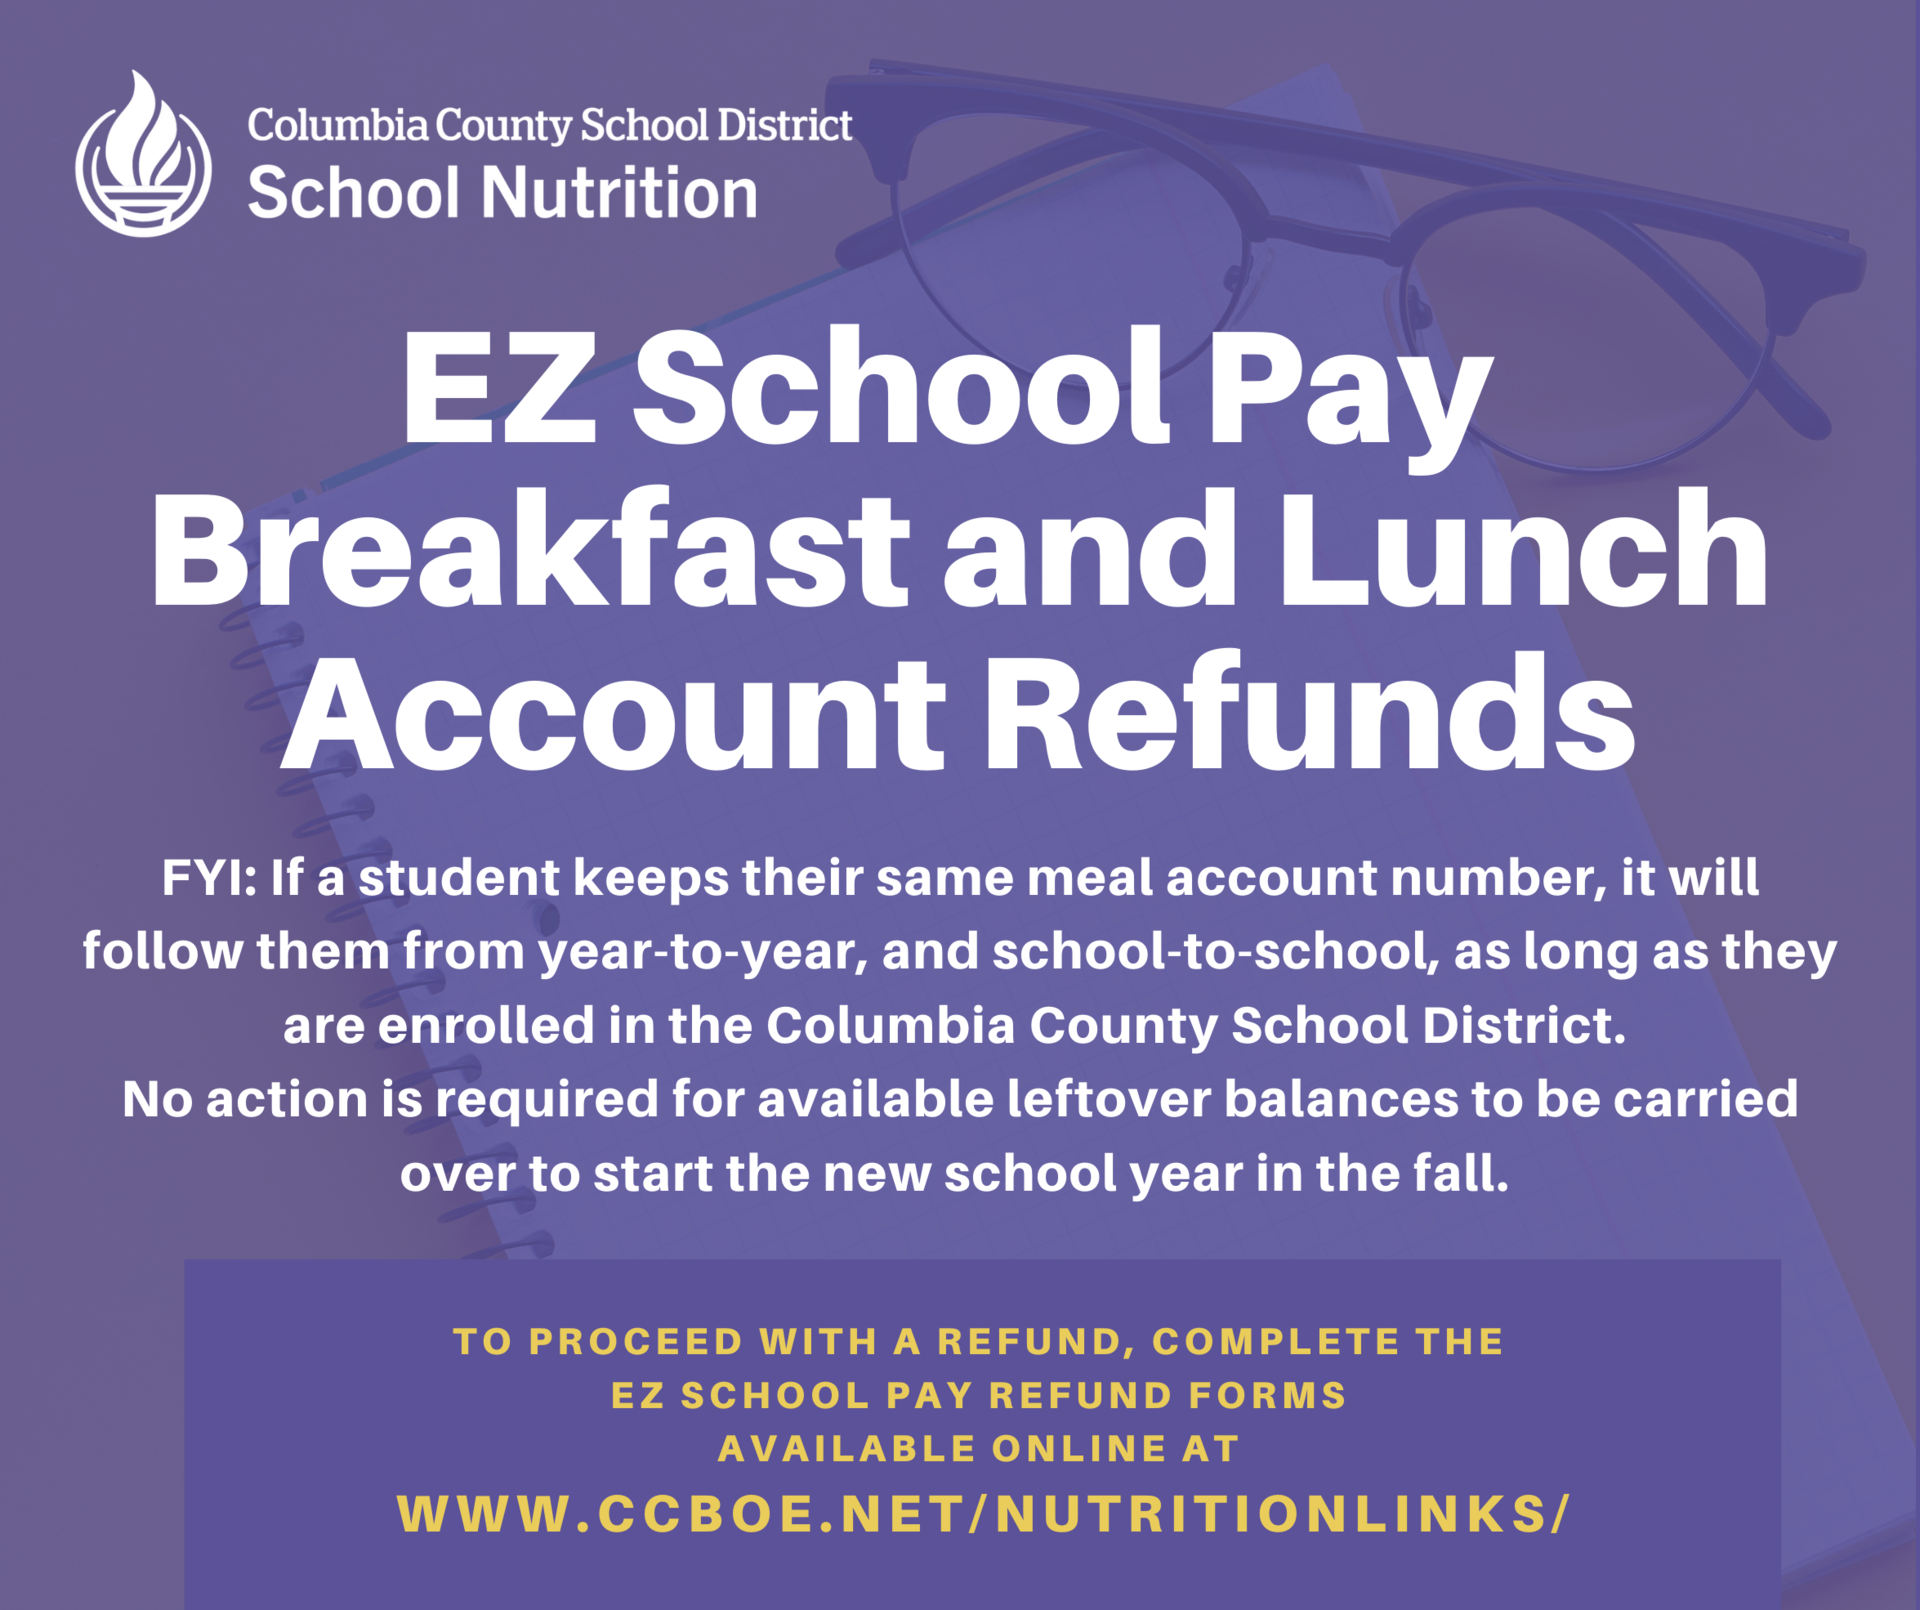 Lunch and Breakfast refund info graphic